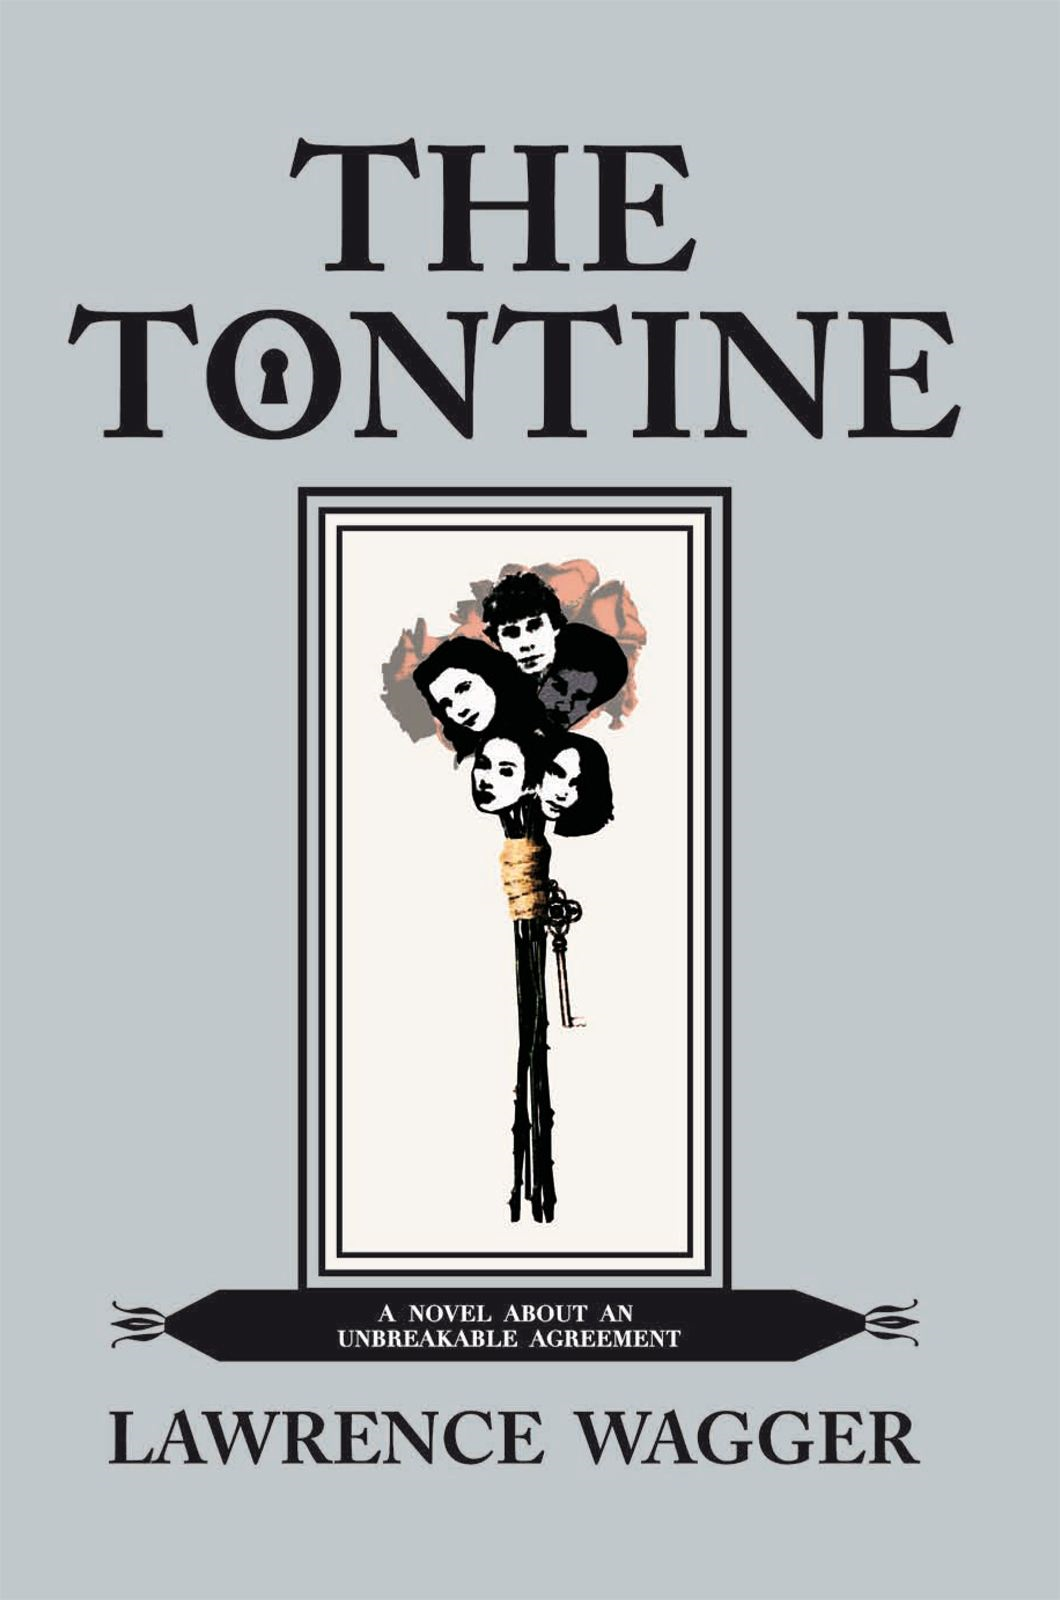 THE TONTINE                            By: LAWRENCE WAGGER